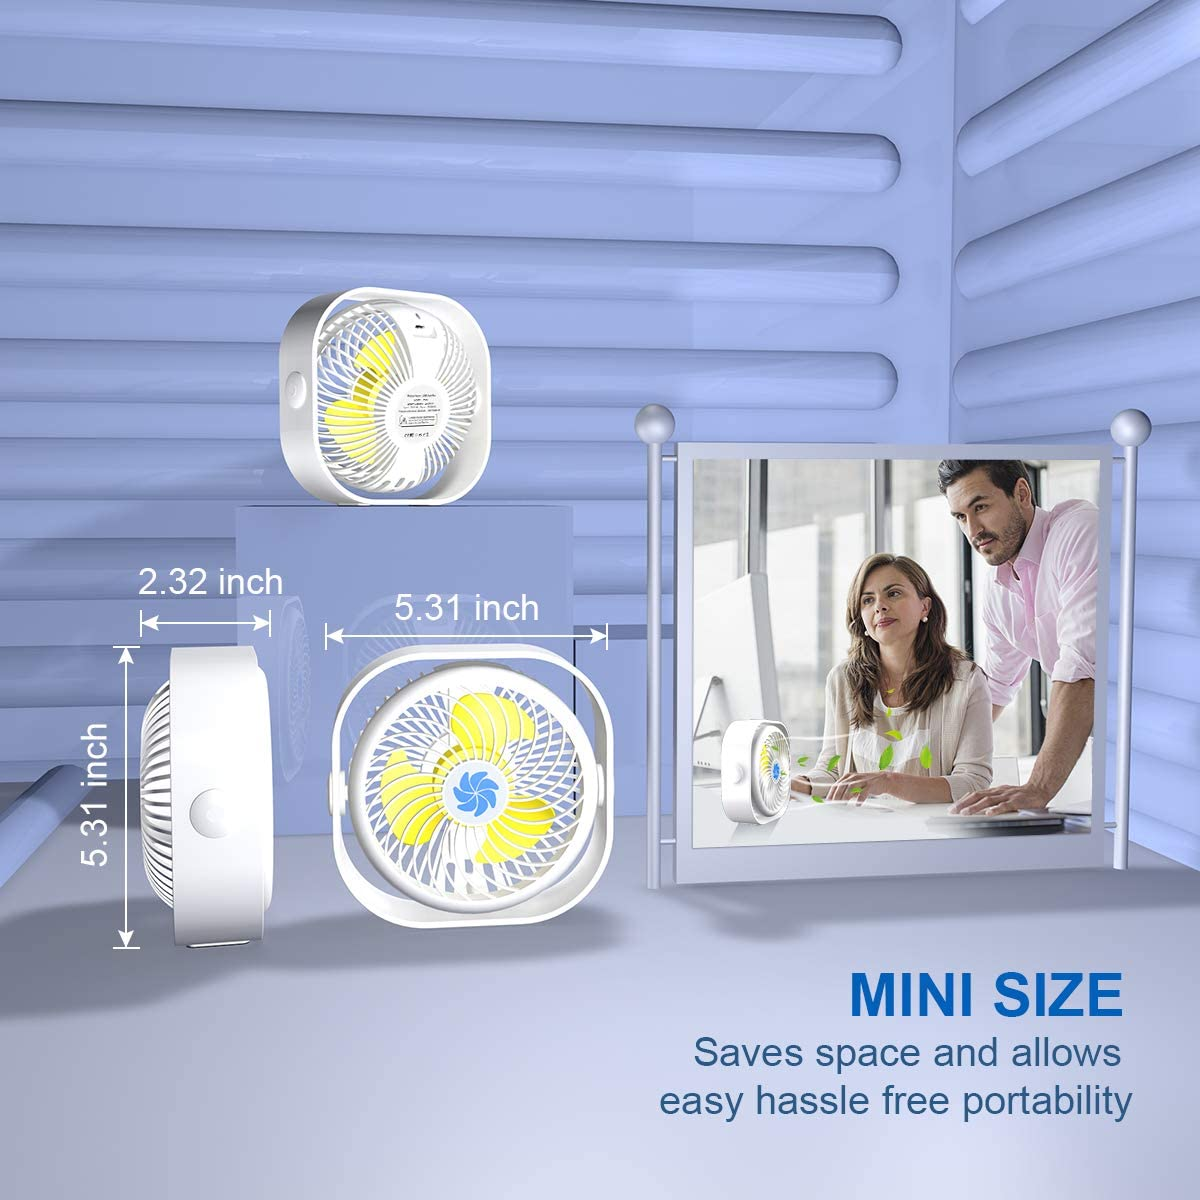 Mini Desk Fan,2000mAH Rechargeable Battery Operated Small Table Fan Portable USB Desk Fan with 3 Speed 360/°Rotating Free Adjustment Personal Fan for Home Ivory White Office Desktop,Outdoor Camping